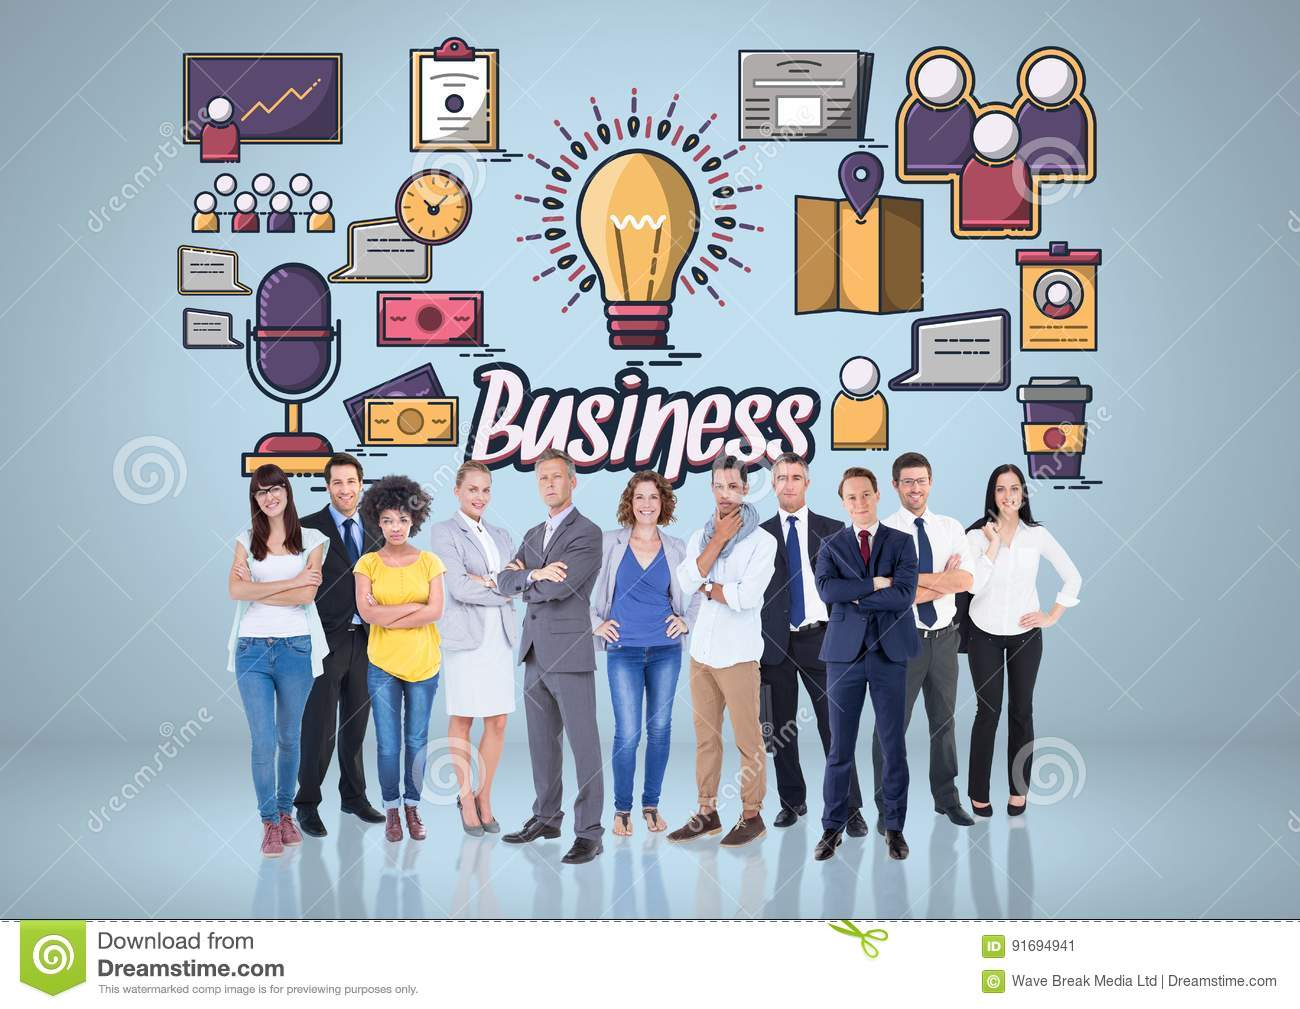 Composite image of worker group against business items